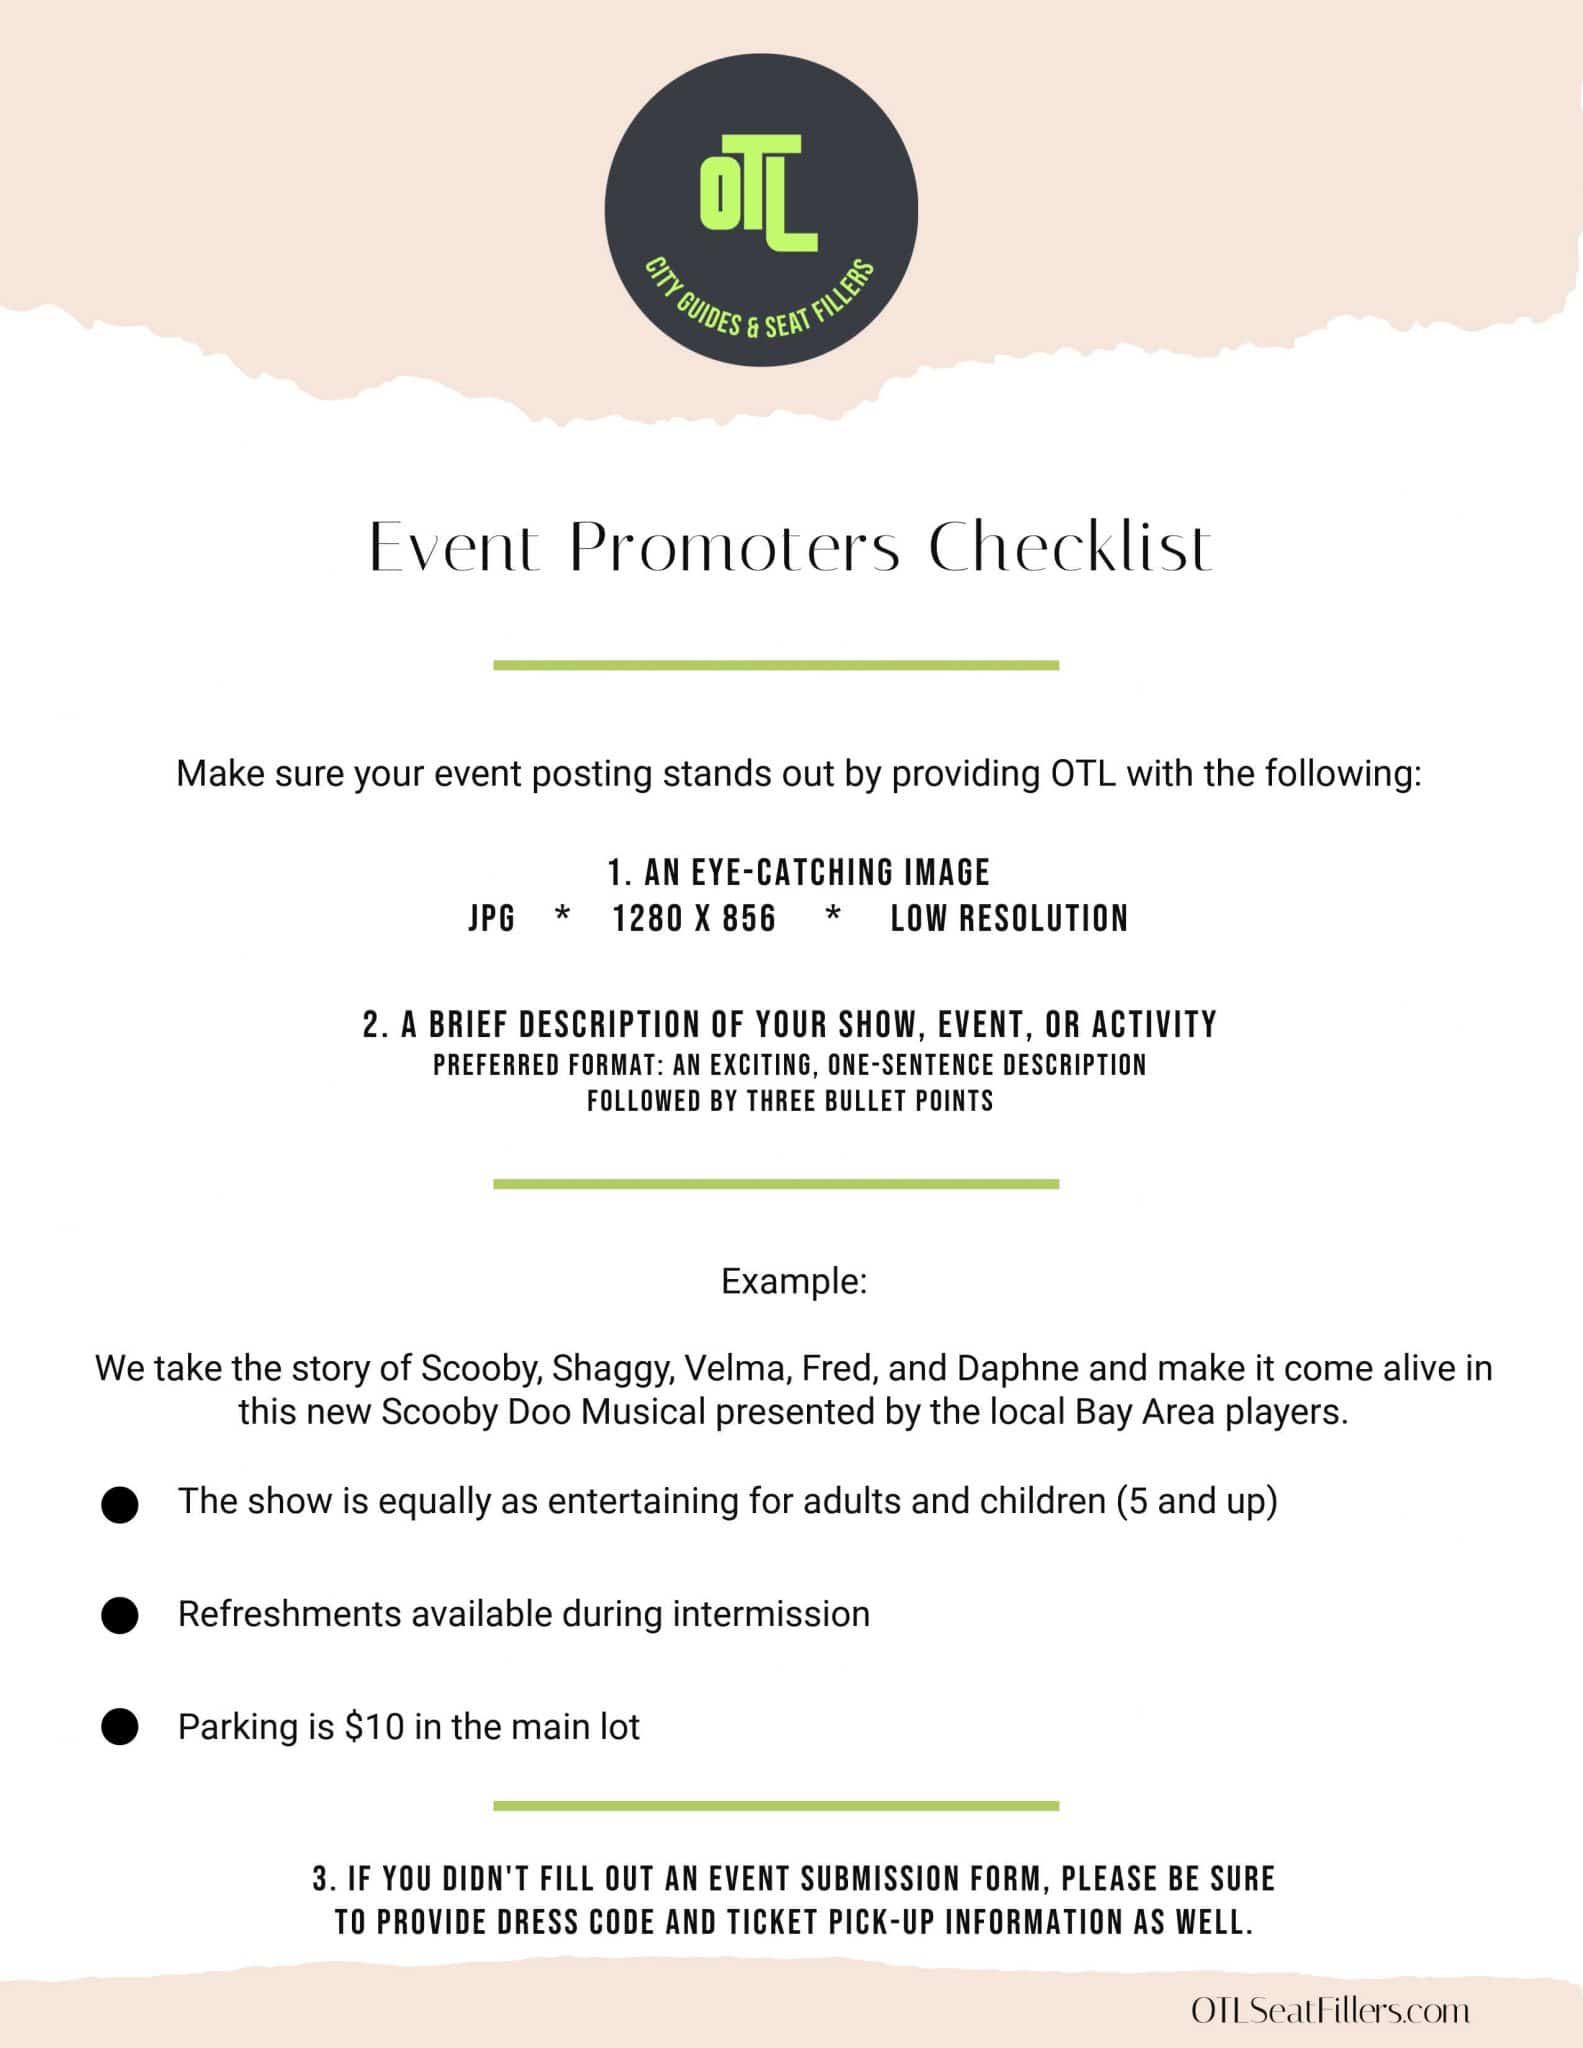 event promoters checklist, info for seat fillers, invite seat fillers, seat filling service